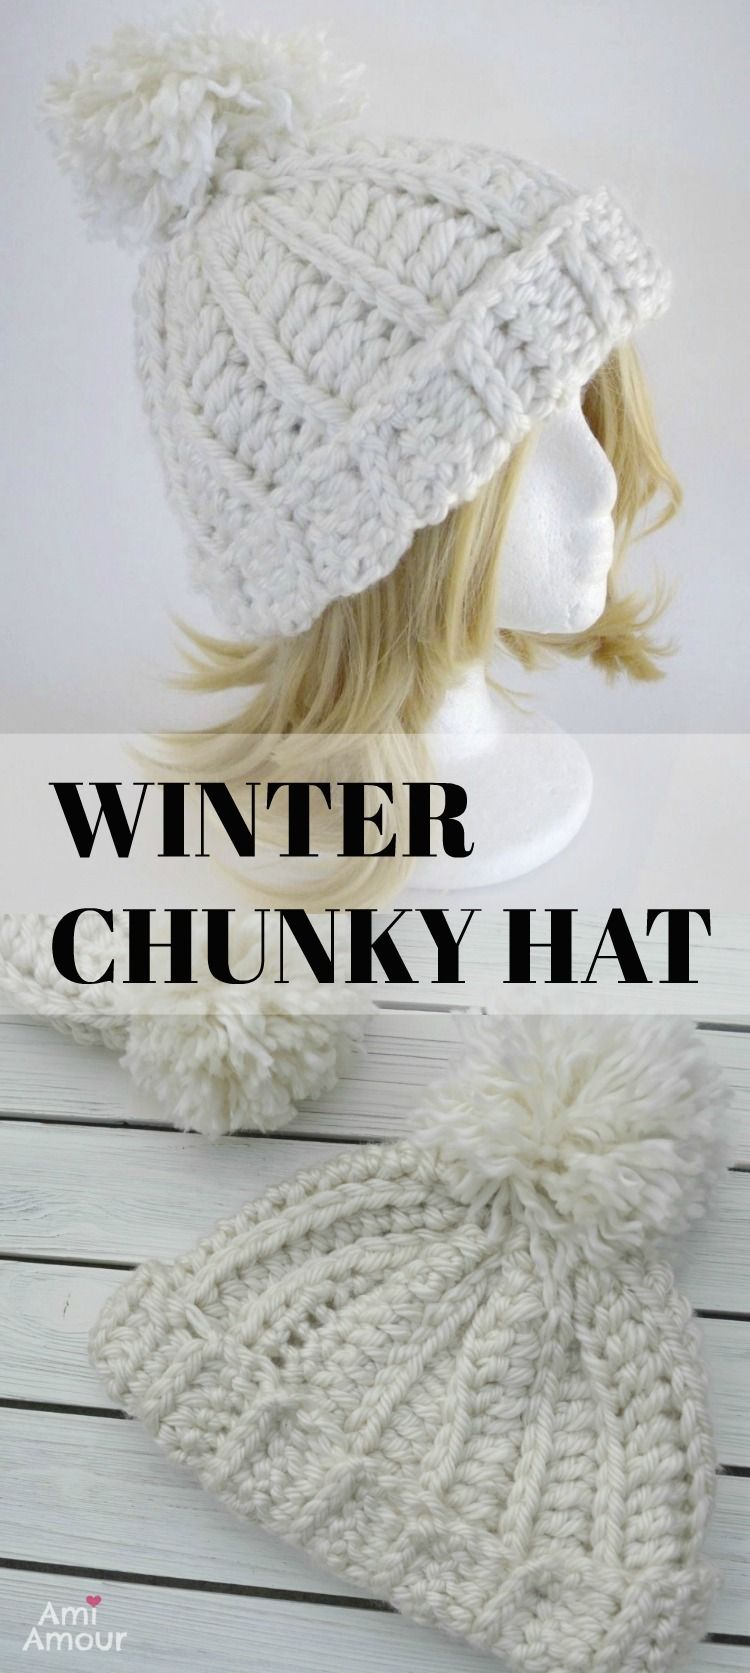 Crochet Hat Free Pattern - Winter Chunky Yarn. Video Tutorial also ...